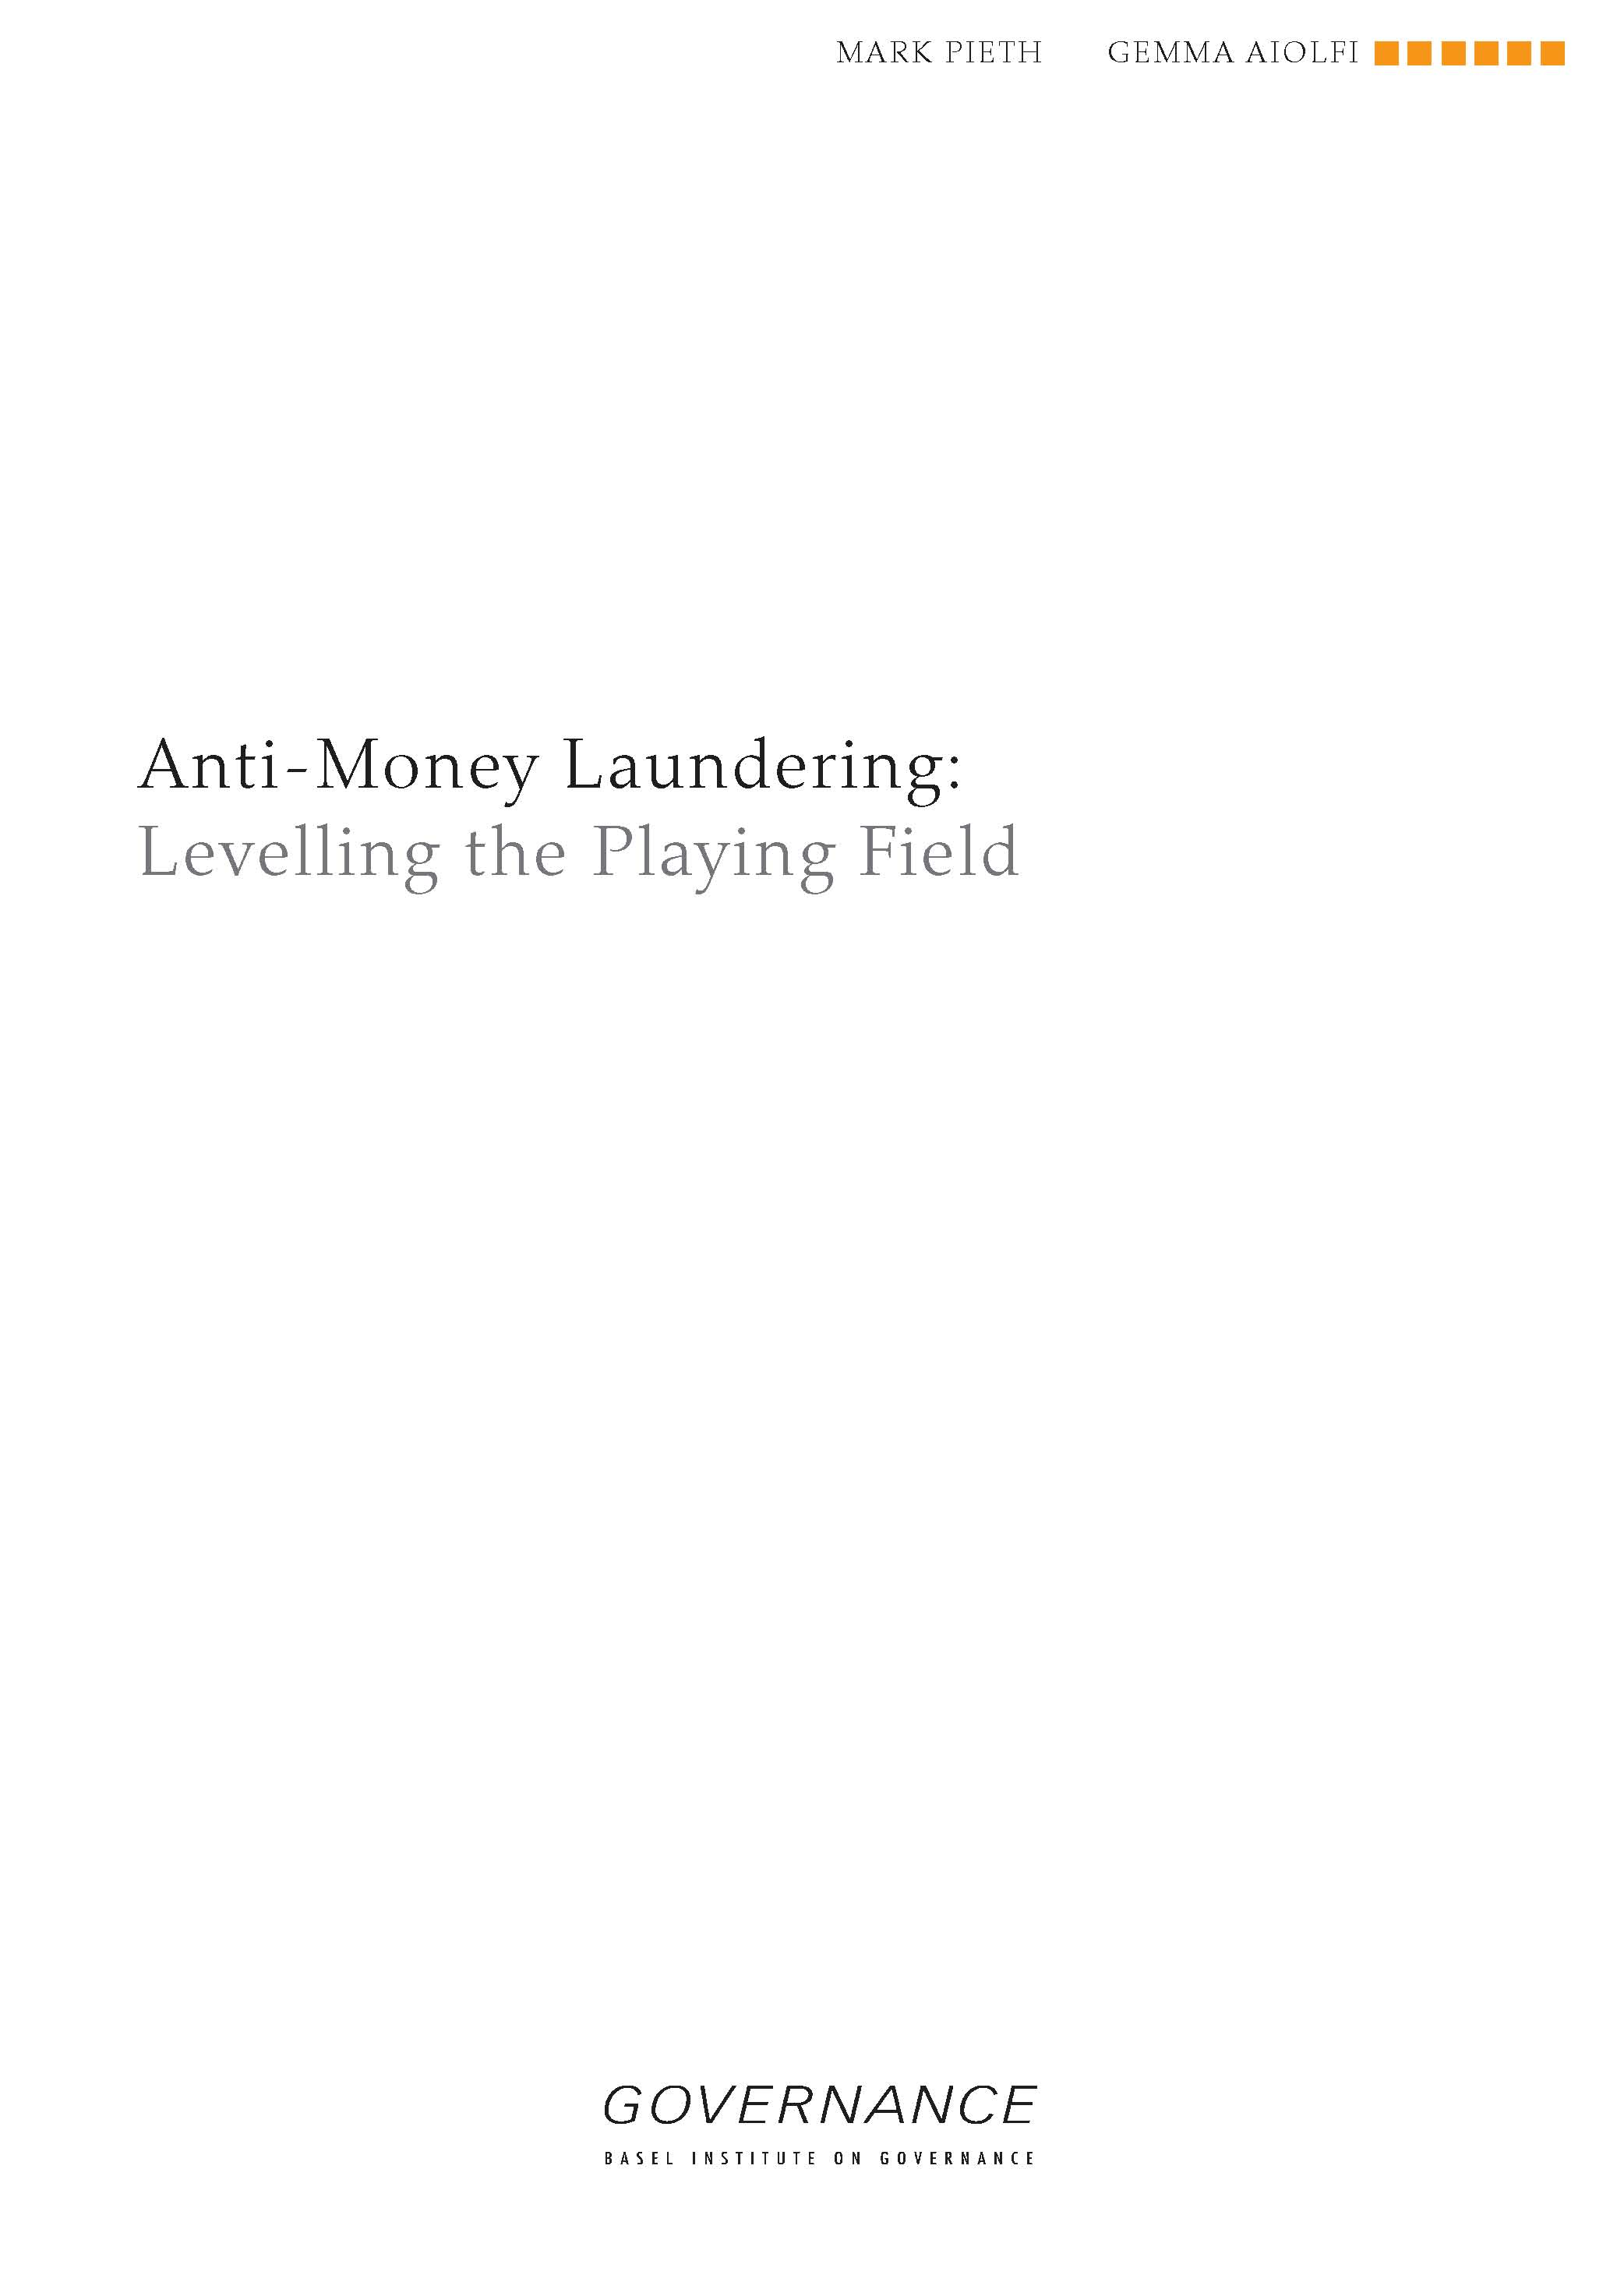 Working Paper 1: Anti-Money Laundering: Levelling the